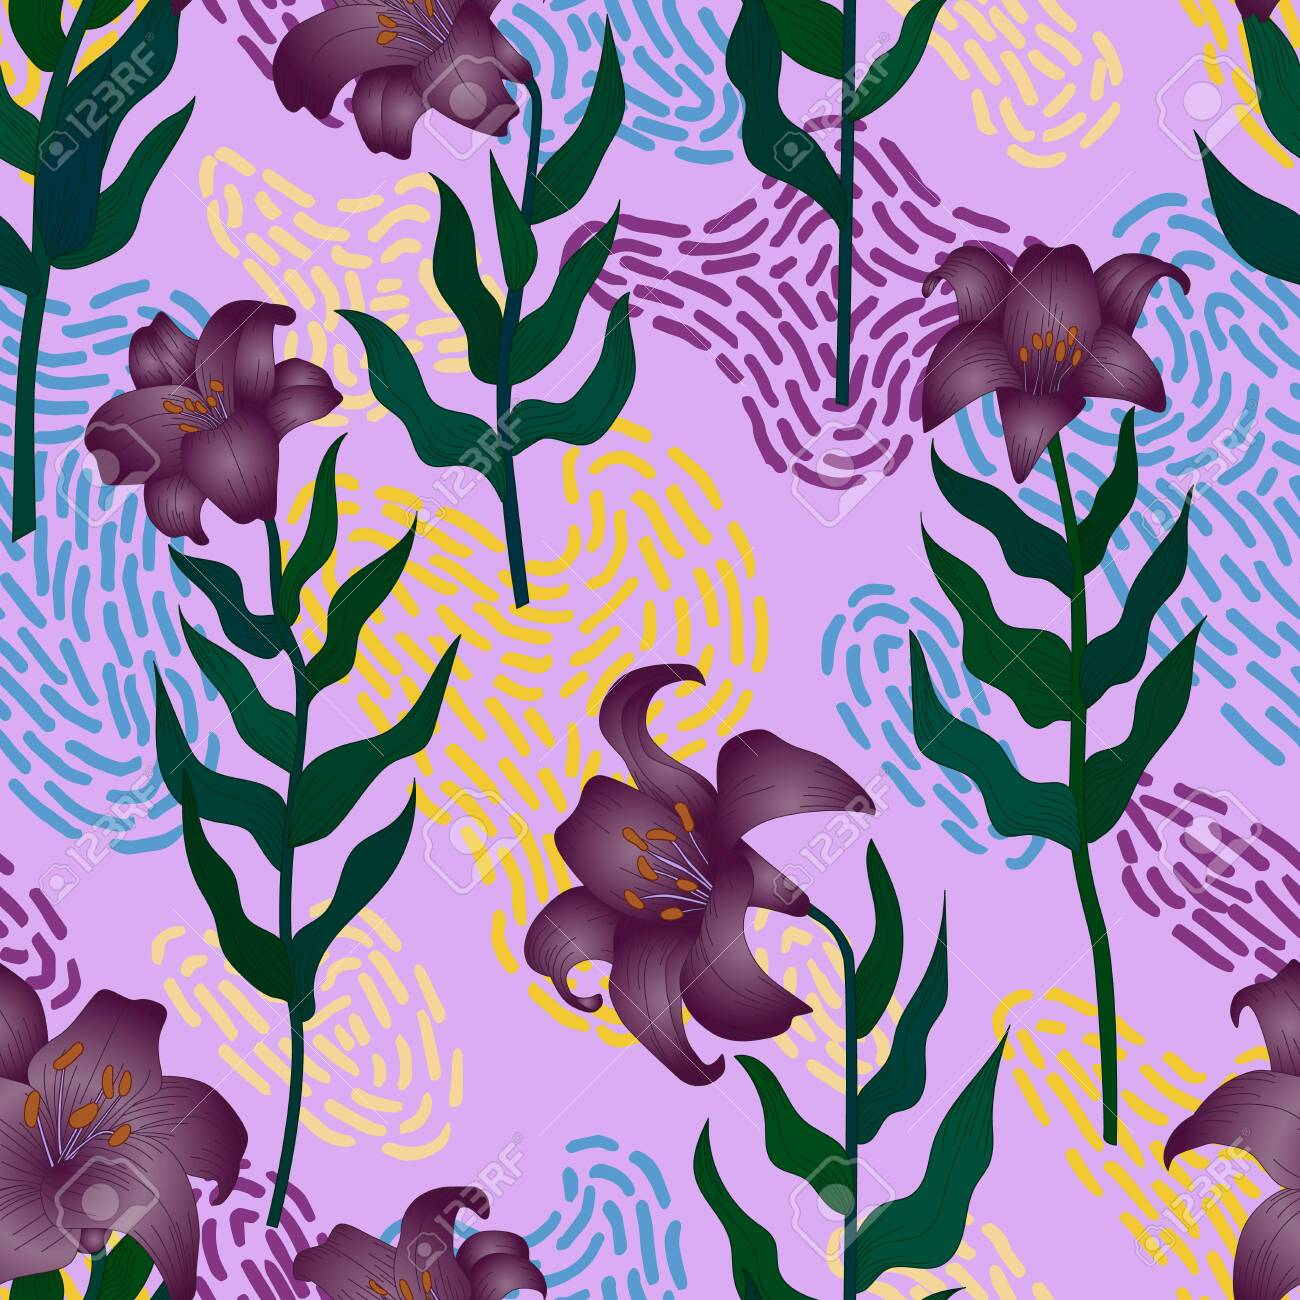 Seamless pattern with beautiful garden flowers - purple lilies. Repetition texture with botanic objects for wrapping paper, web background or textile design. Vector illustration - 147797447